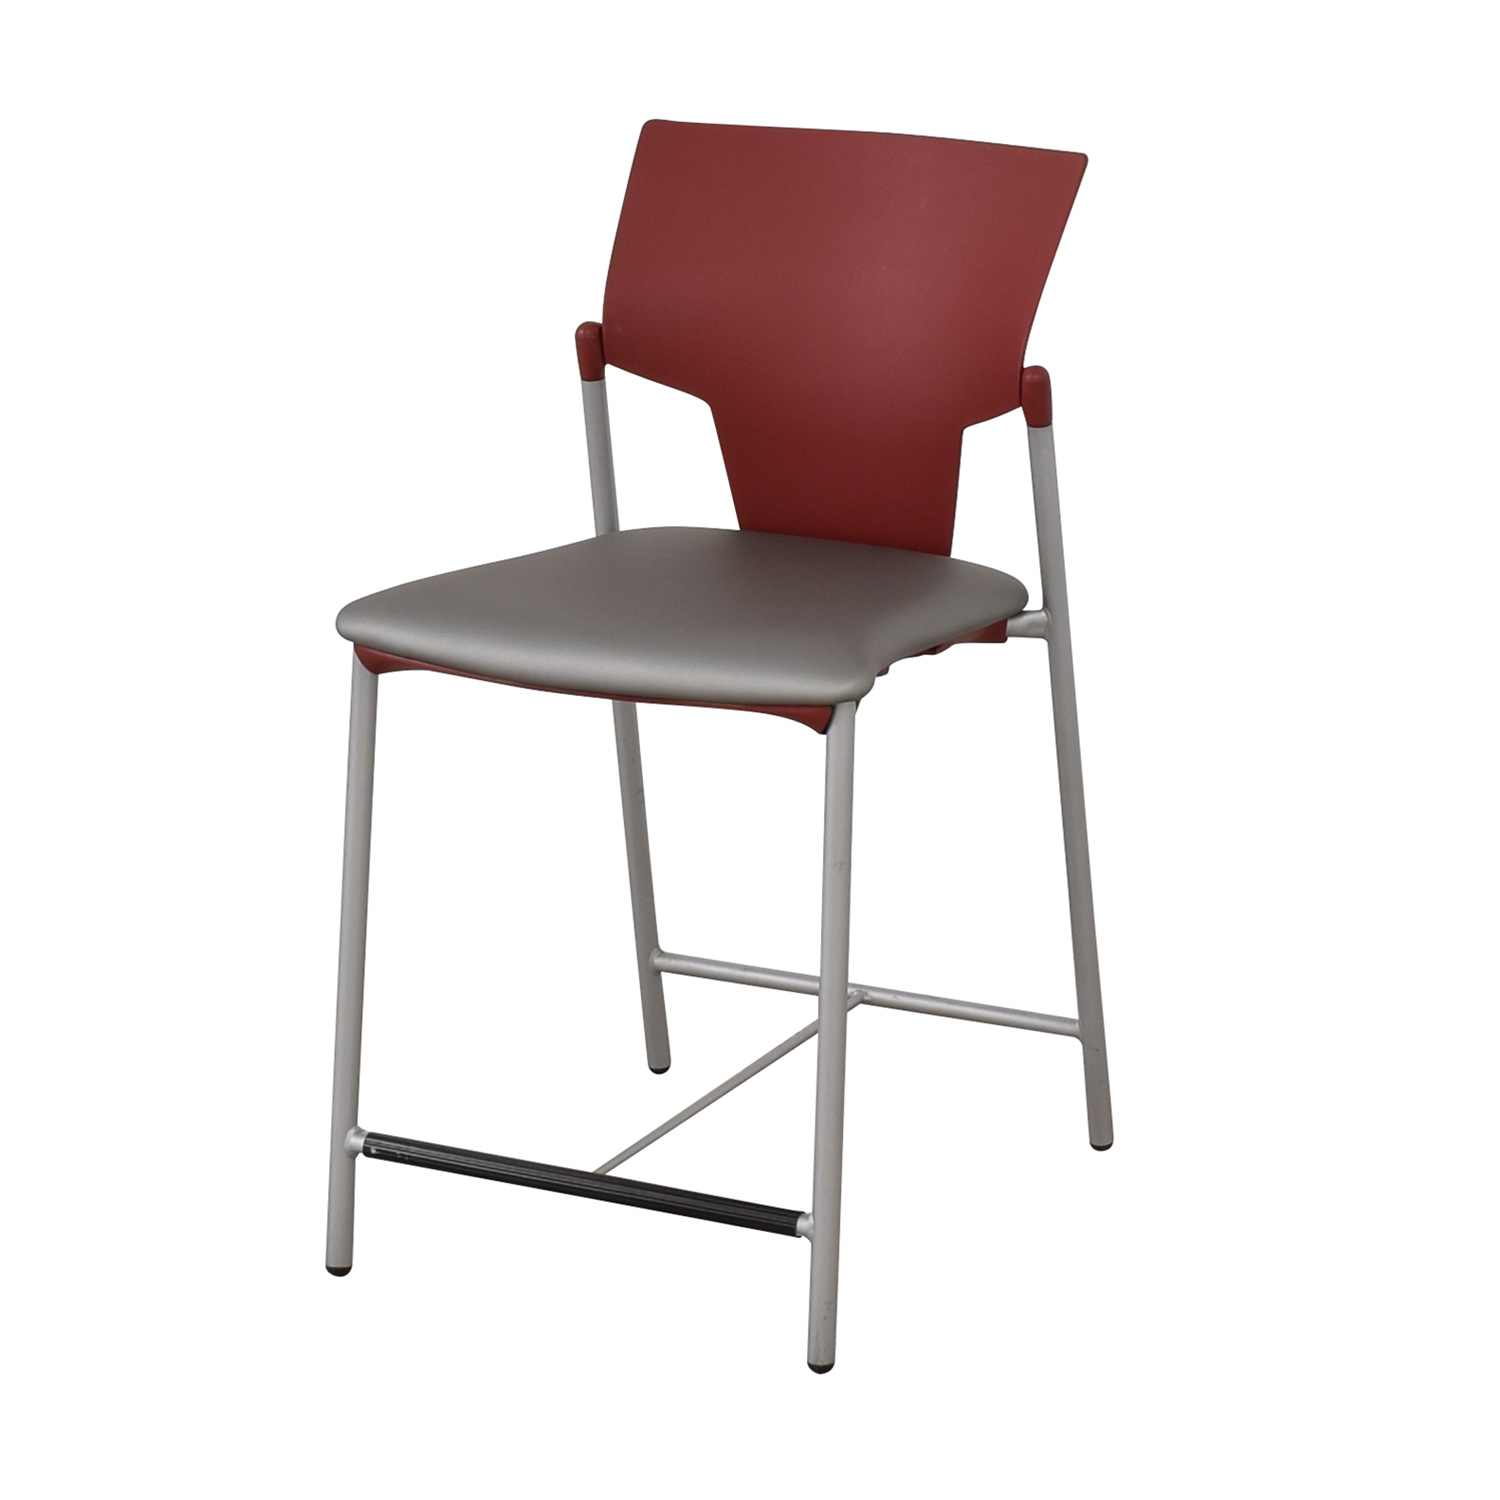 buy Officeworks Bar Stool Officeworks Chairs